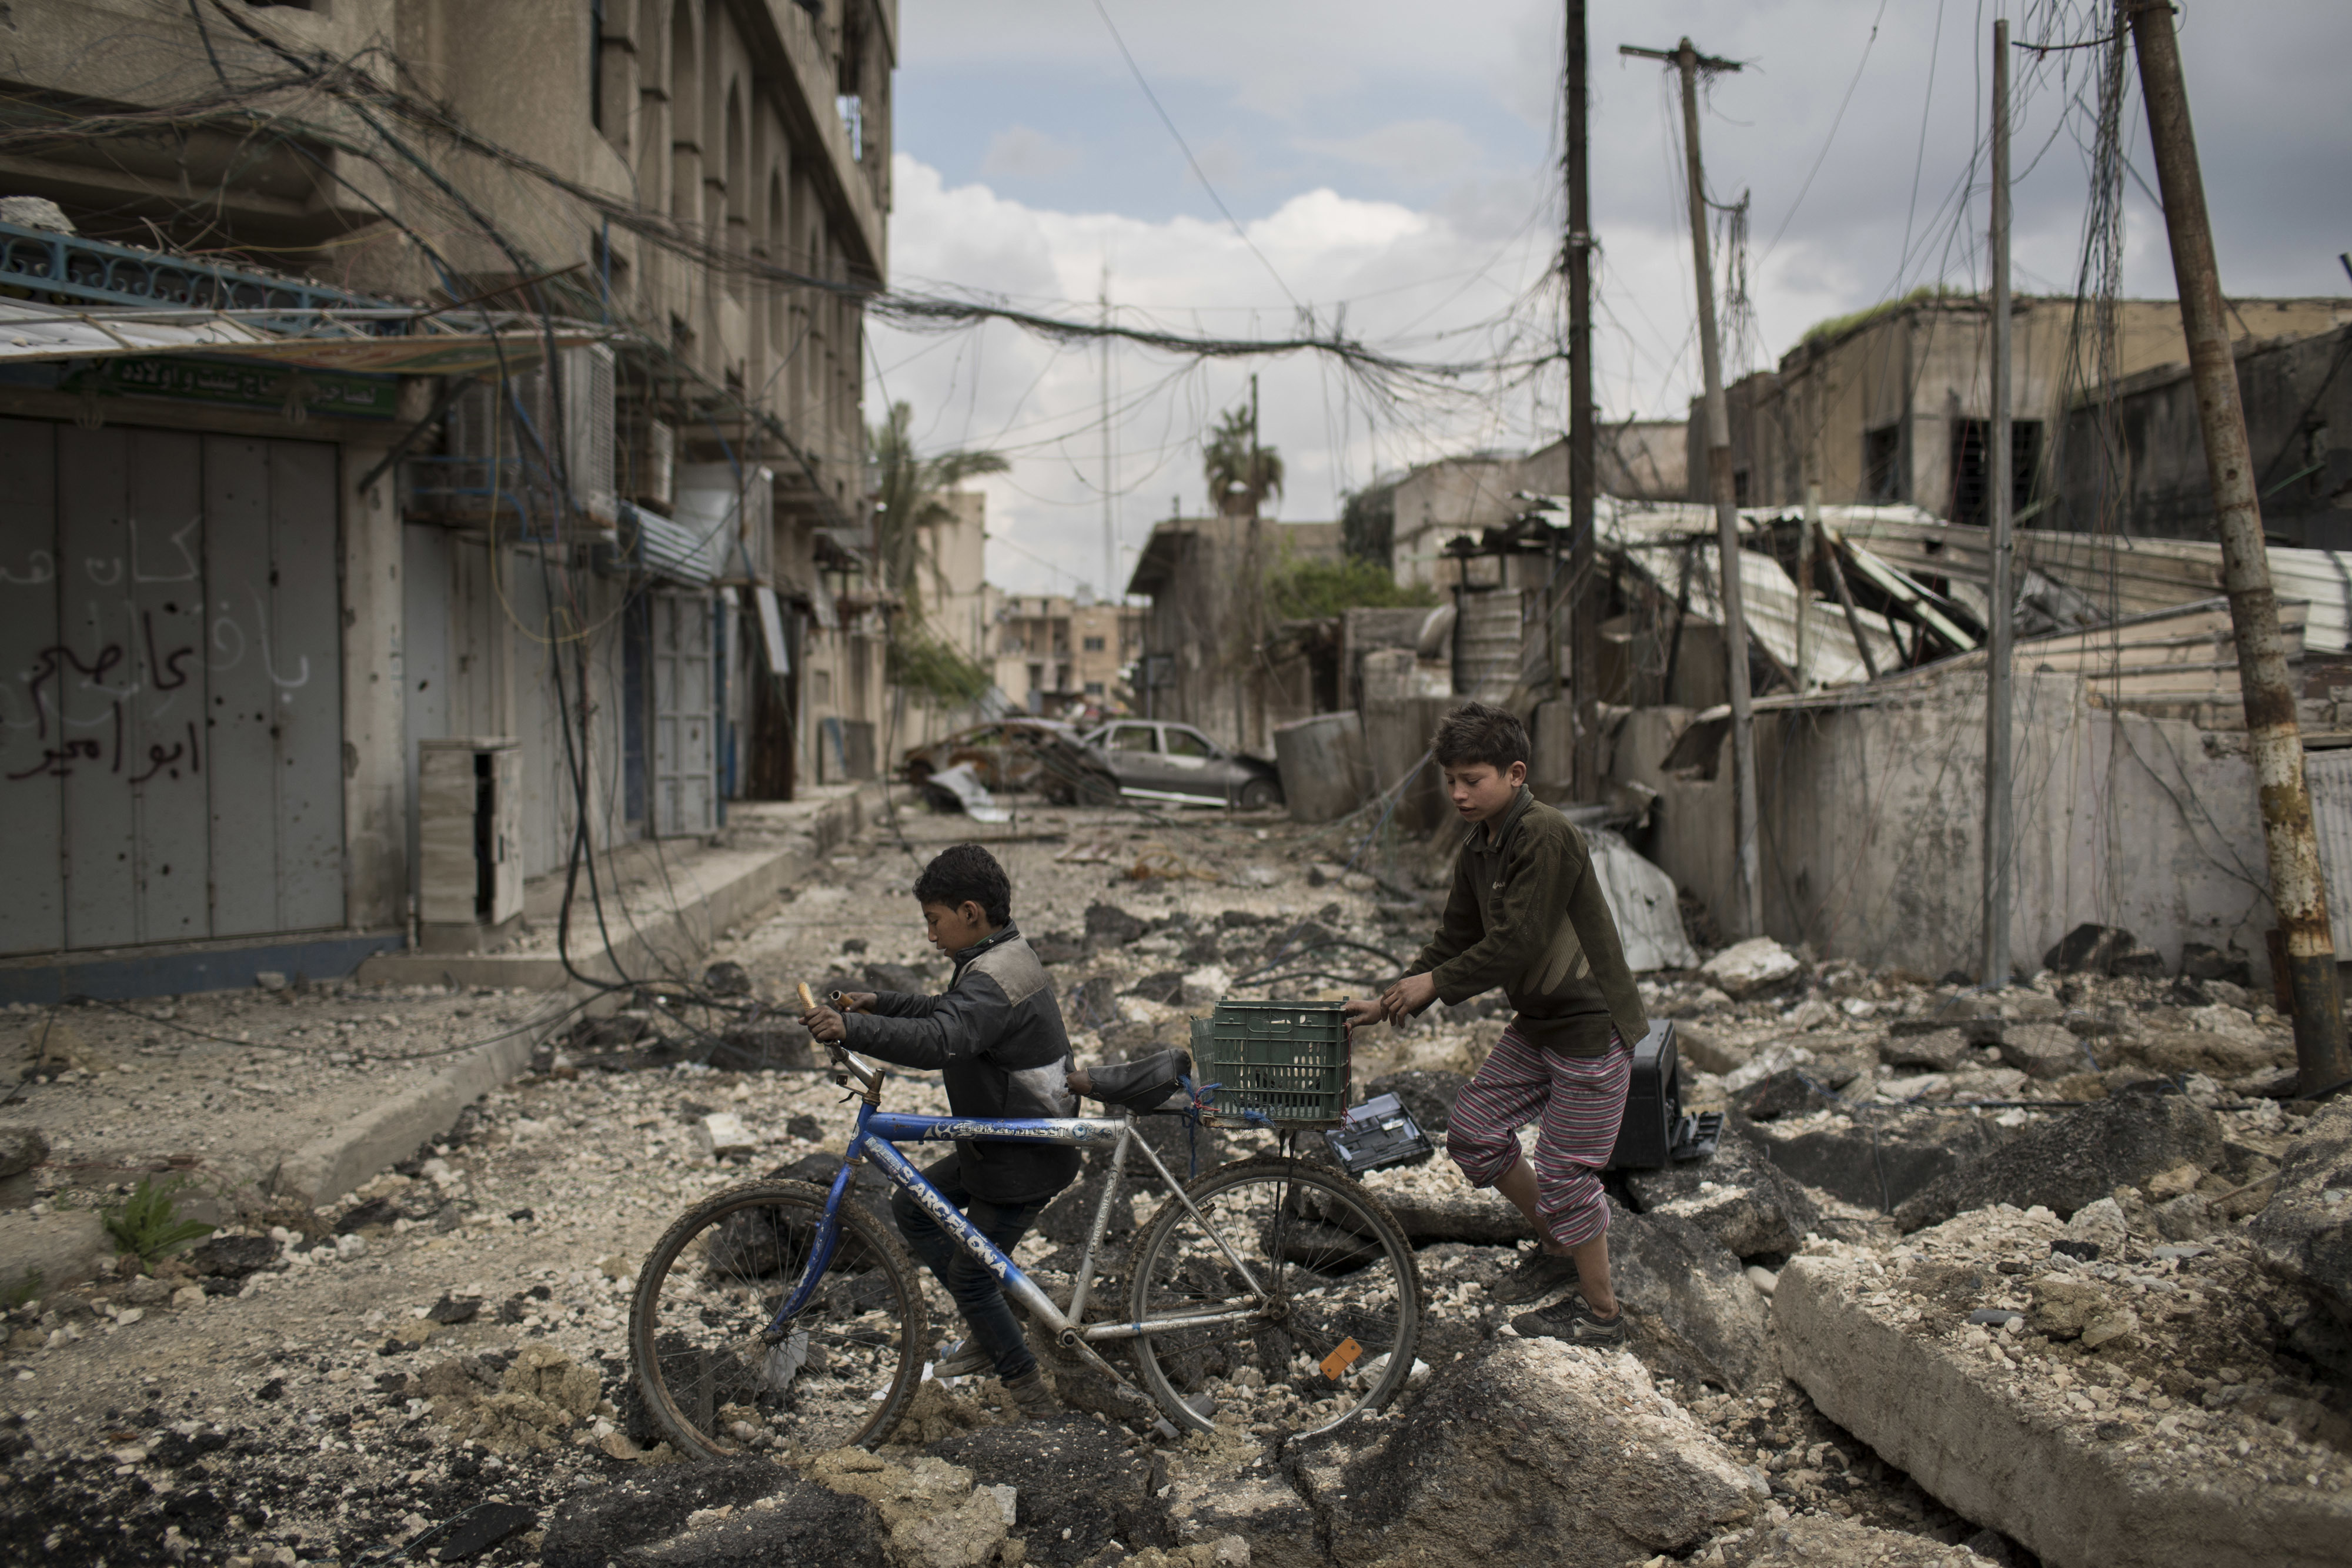 Iraqi boys walk on a destroyed street in a neighborhood recently retaken by Iraqi security forces during fighting against Islamic State militants on the western side of in Mosul, Iraq, Monday, April 3, 2017. (AP Photo/Felipe Dana)